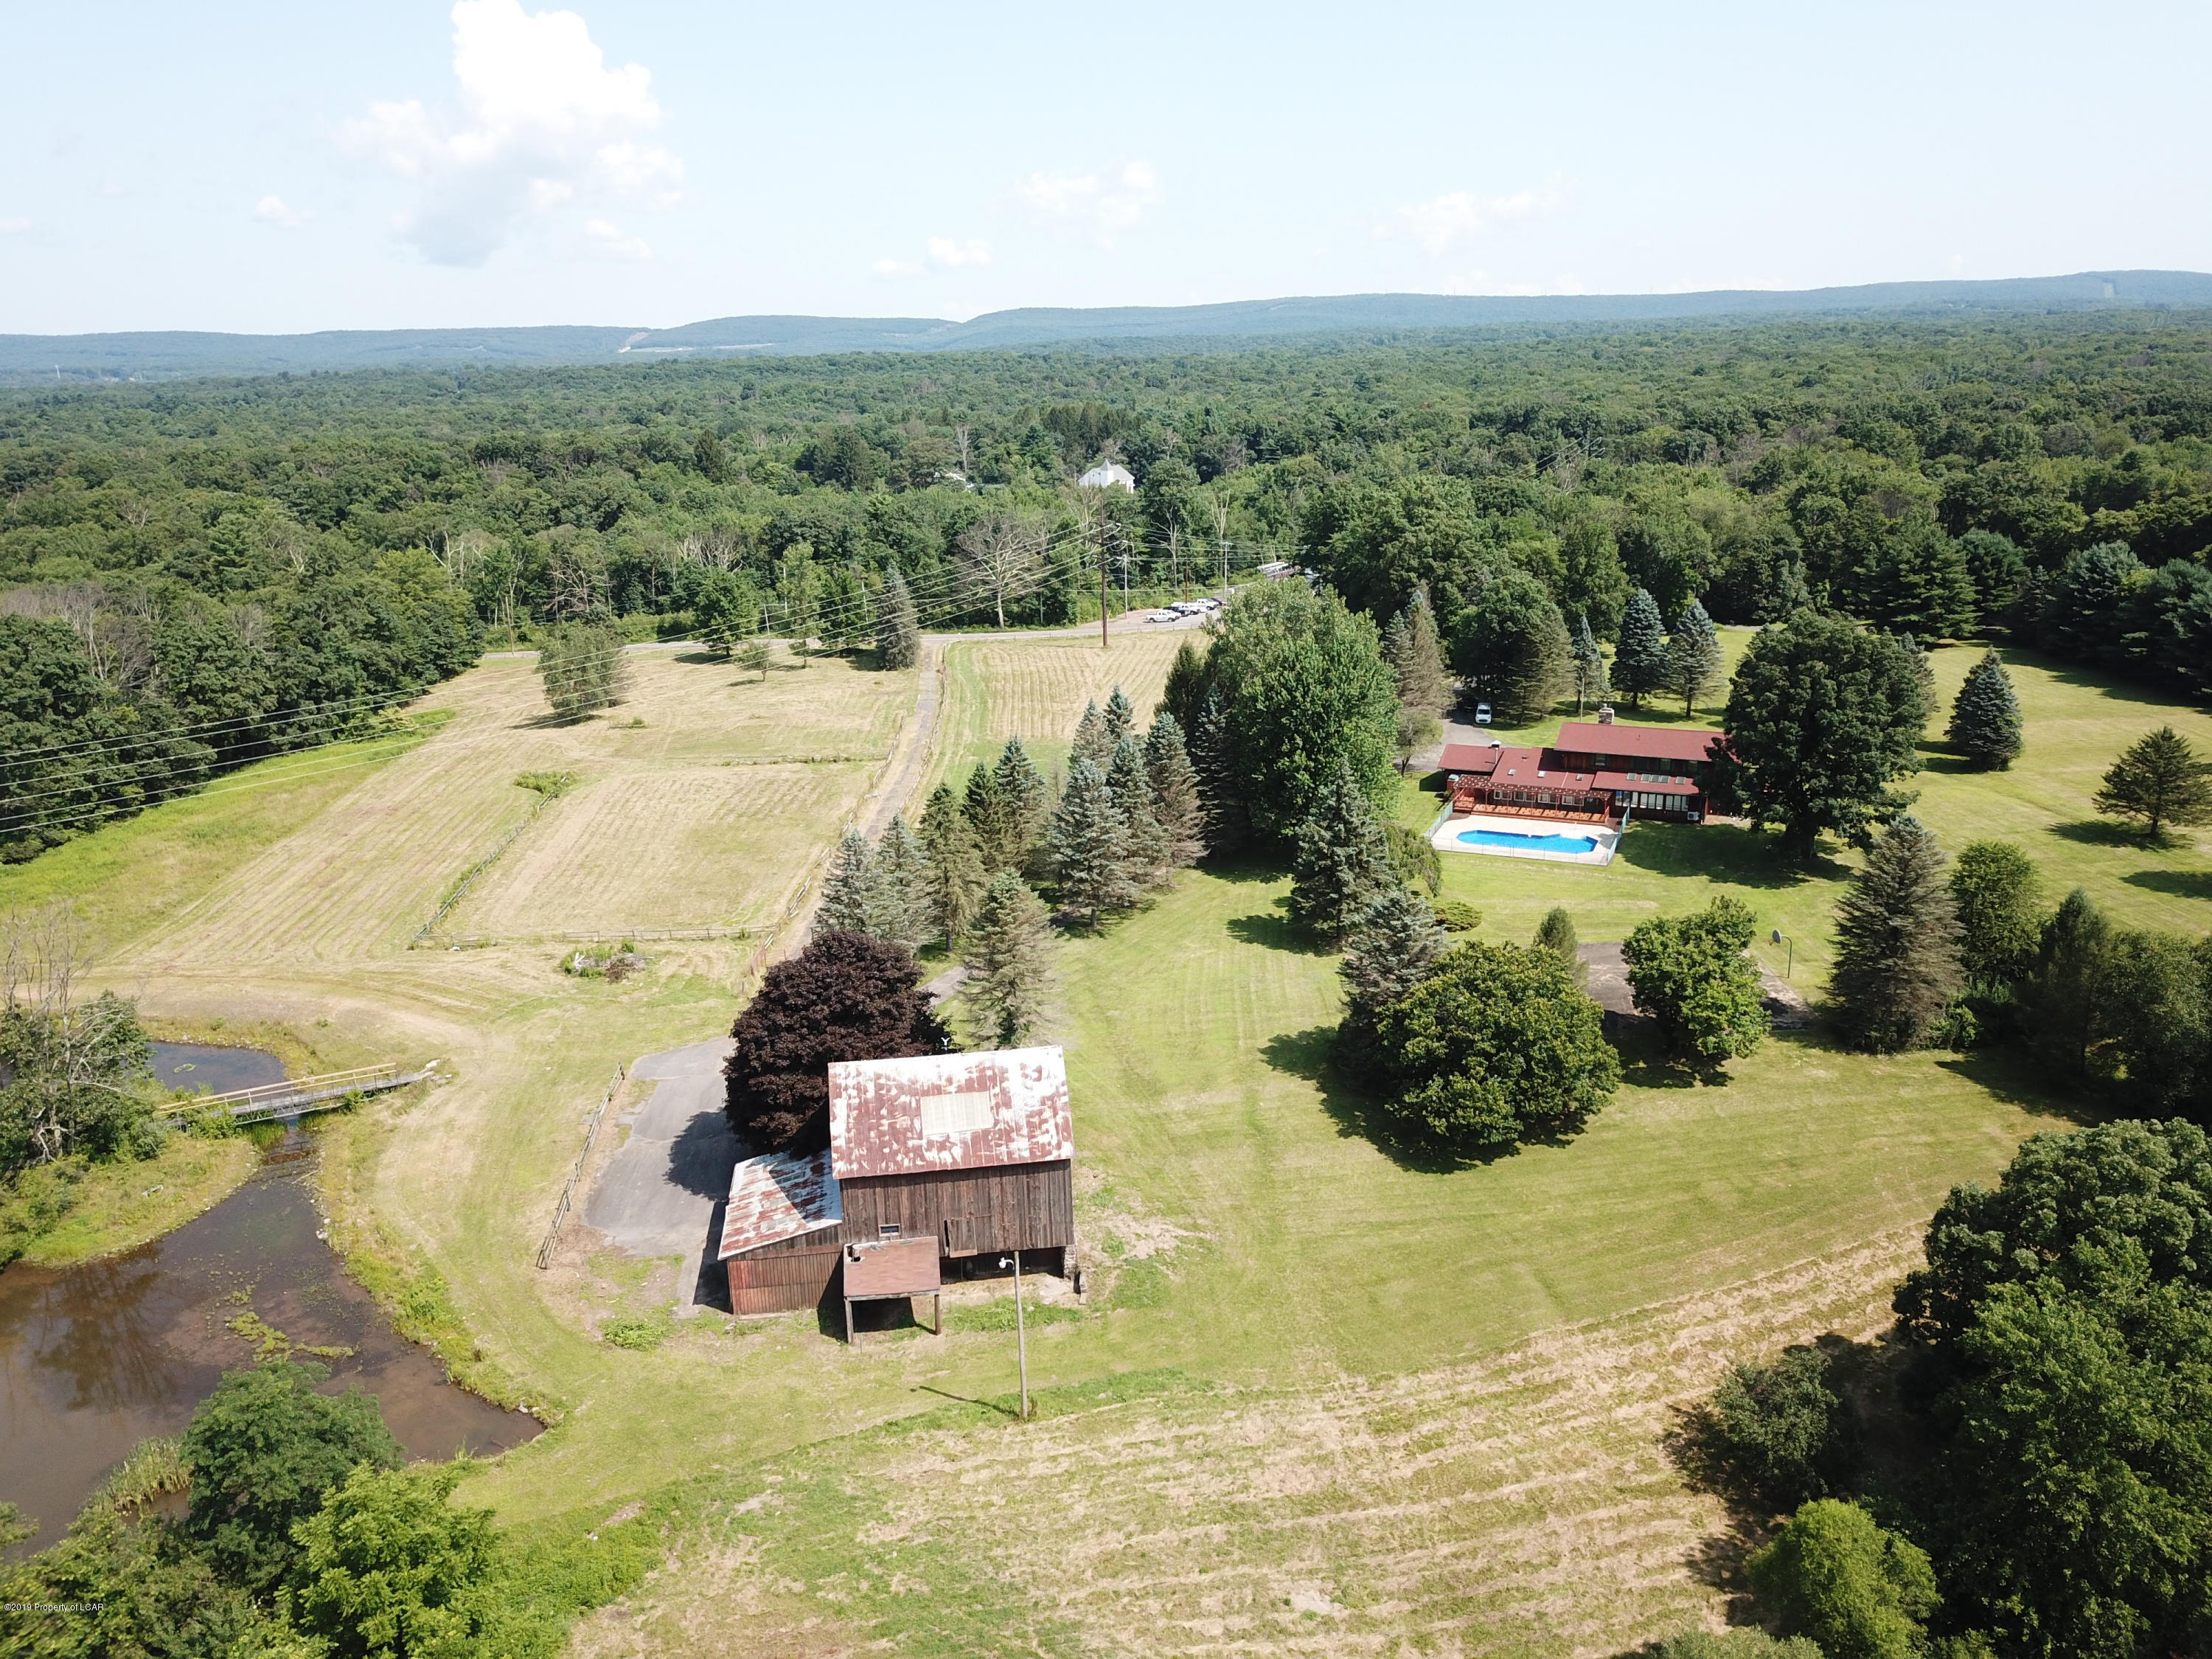 Aerial View of Entire Property